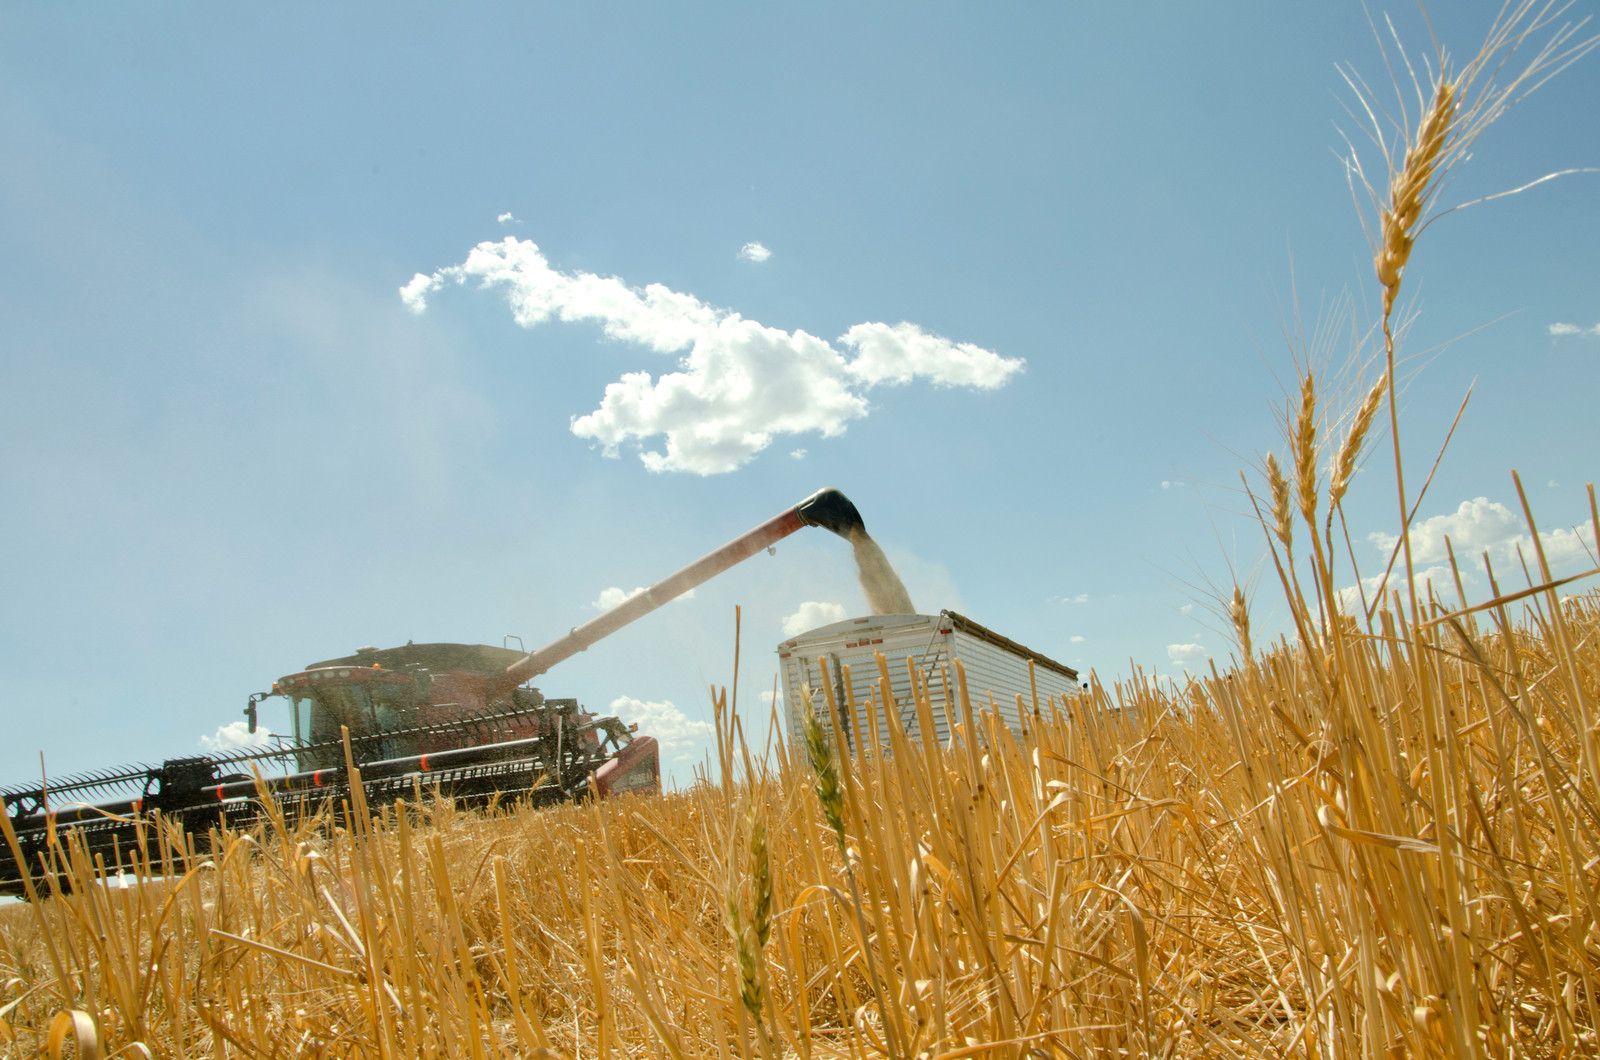 A photograph of a combine harvester collecting grain in a field.